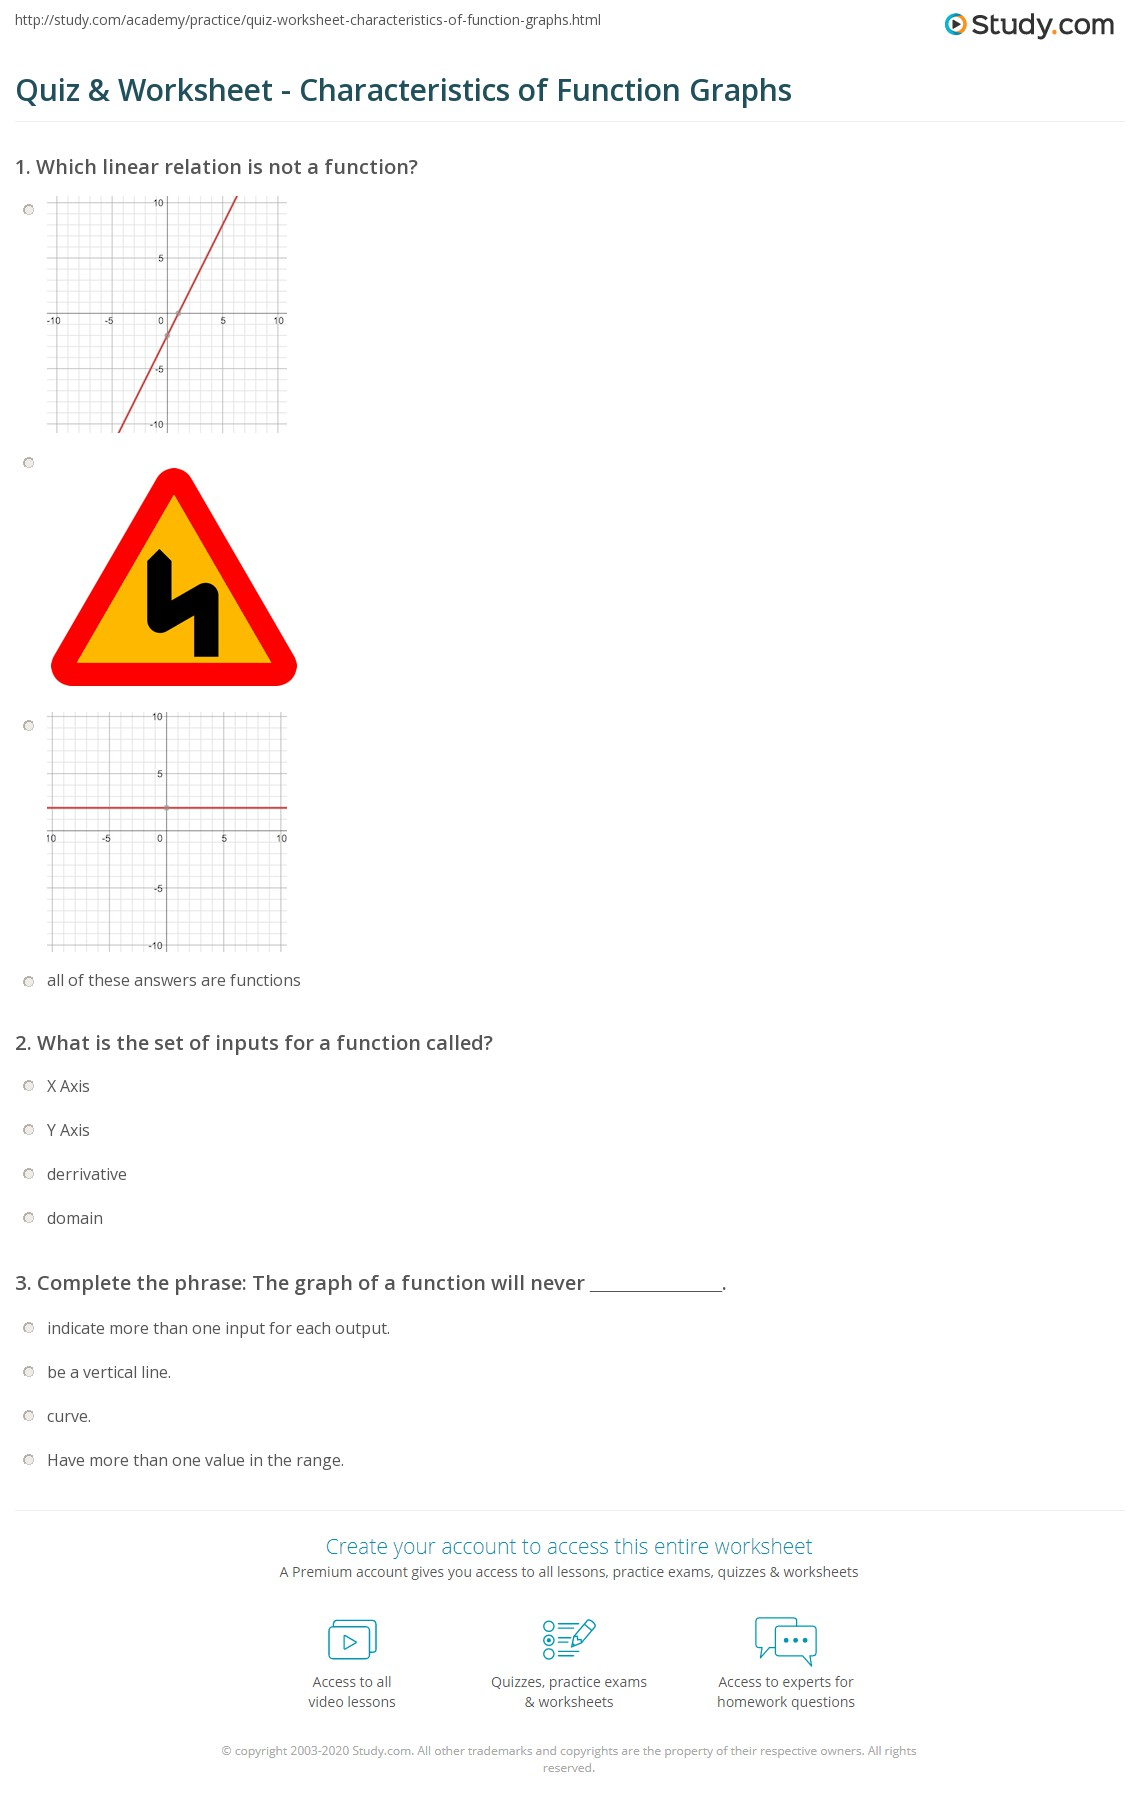 math worksheet : quiz  worksheet  characteristics of function graphs  study  : Functional Skills Maths Level 2 Worksheets